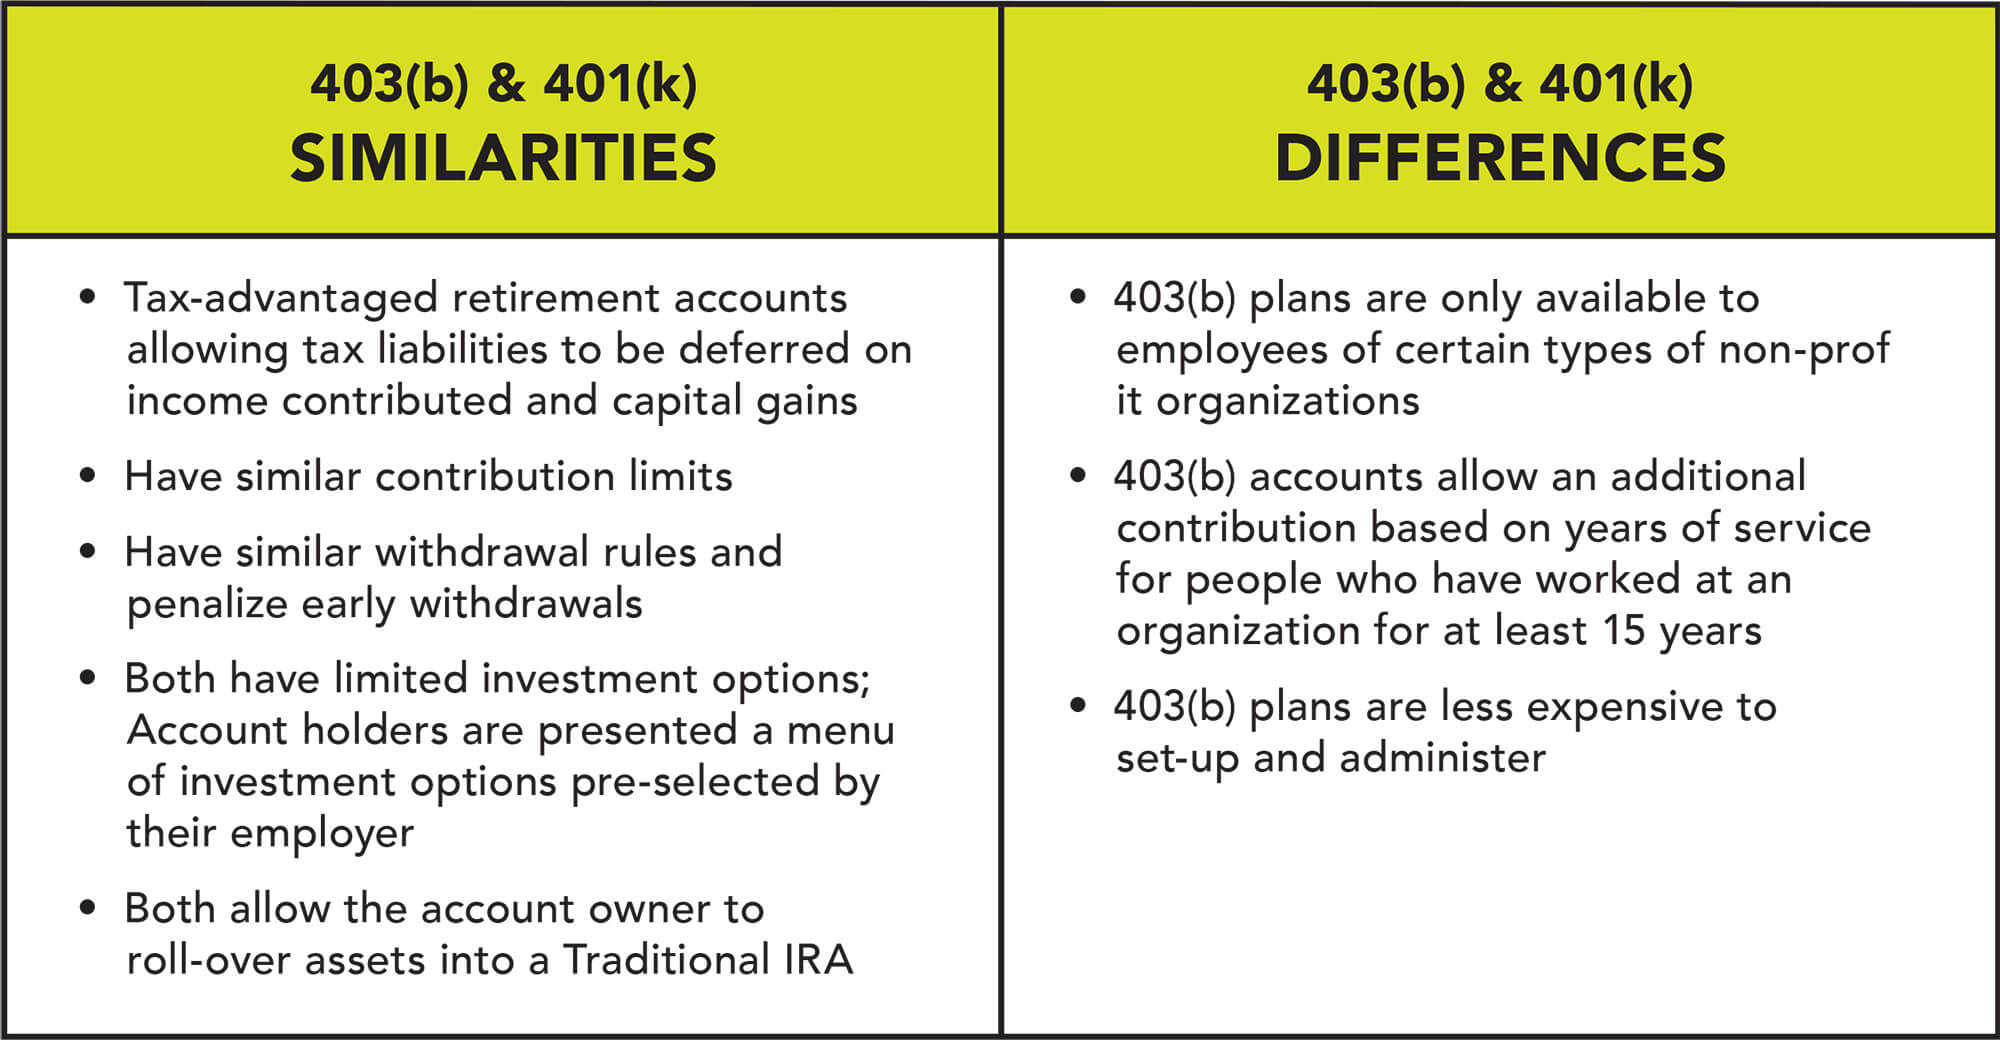 A 403(b) account is similar to a 401(k) but has some additional benefits.